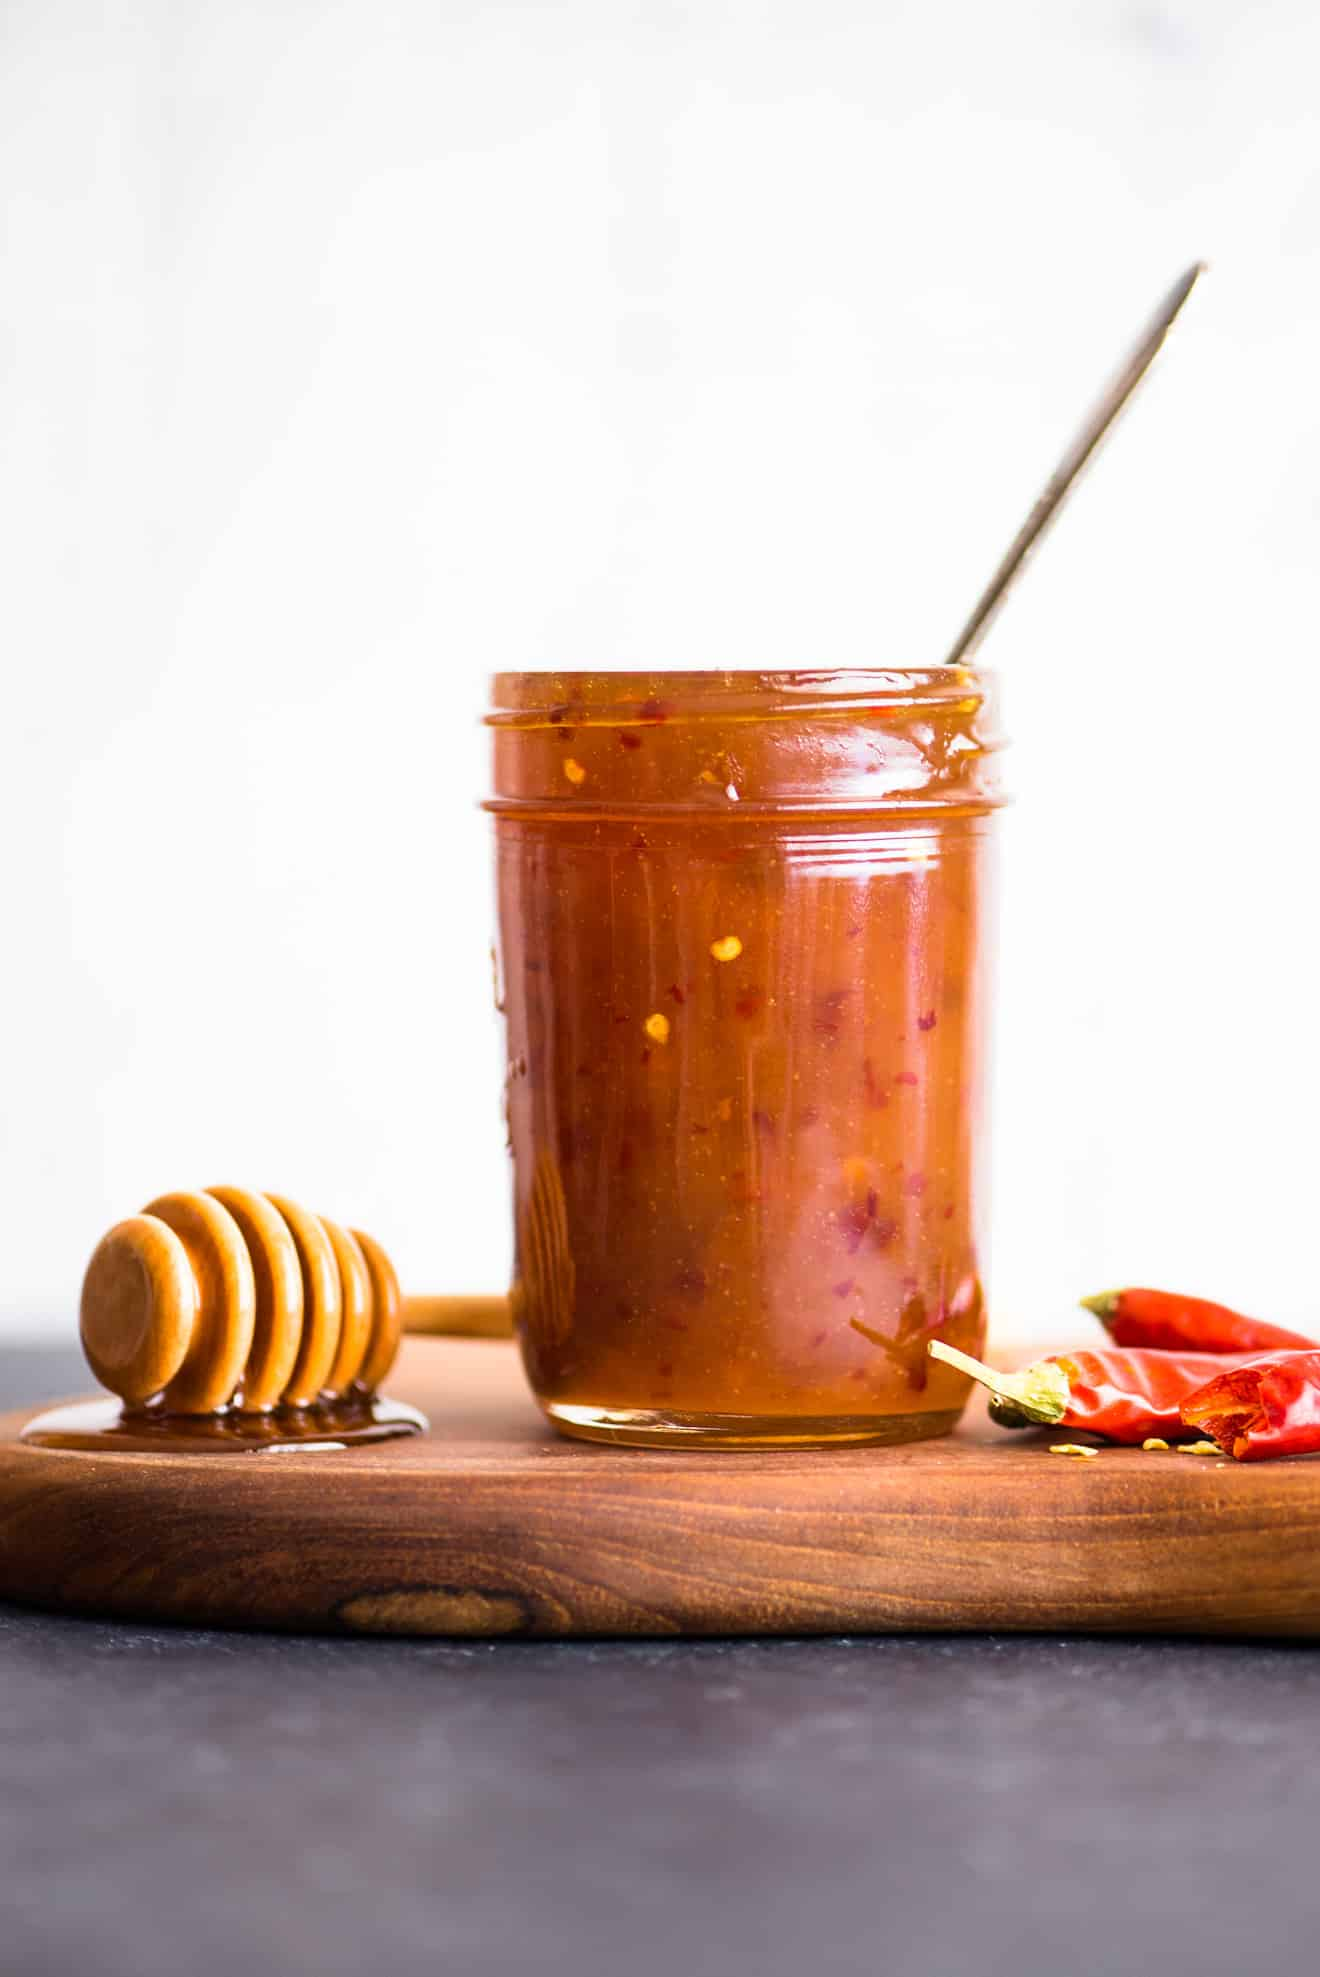 A healthier sweet chili sauce made with honey. It takes less than 10 minutes to prepare and it's great for stir fries or as a dipping sauce for appetizers!